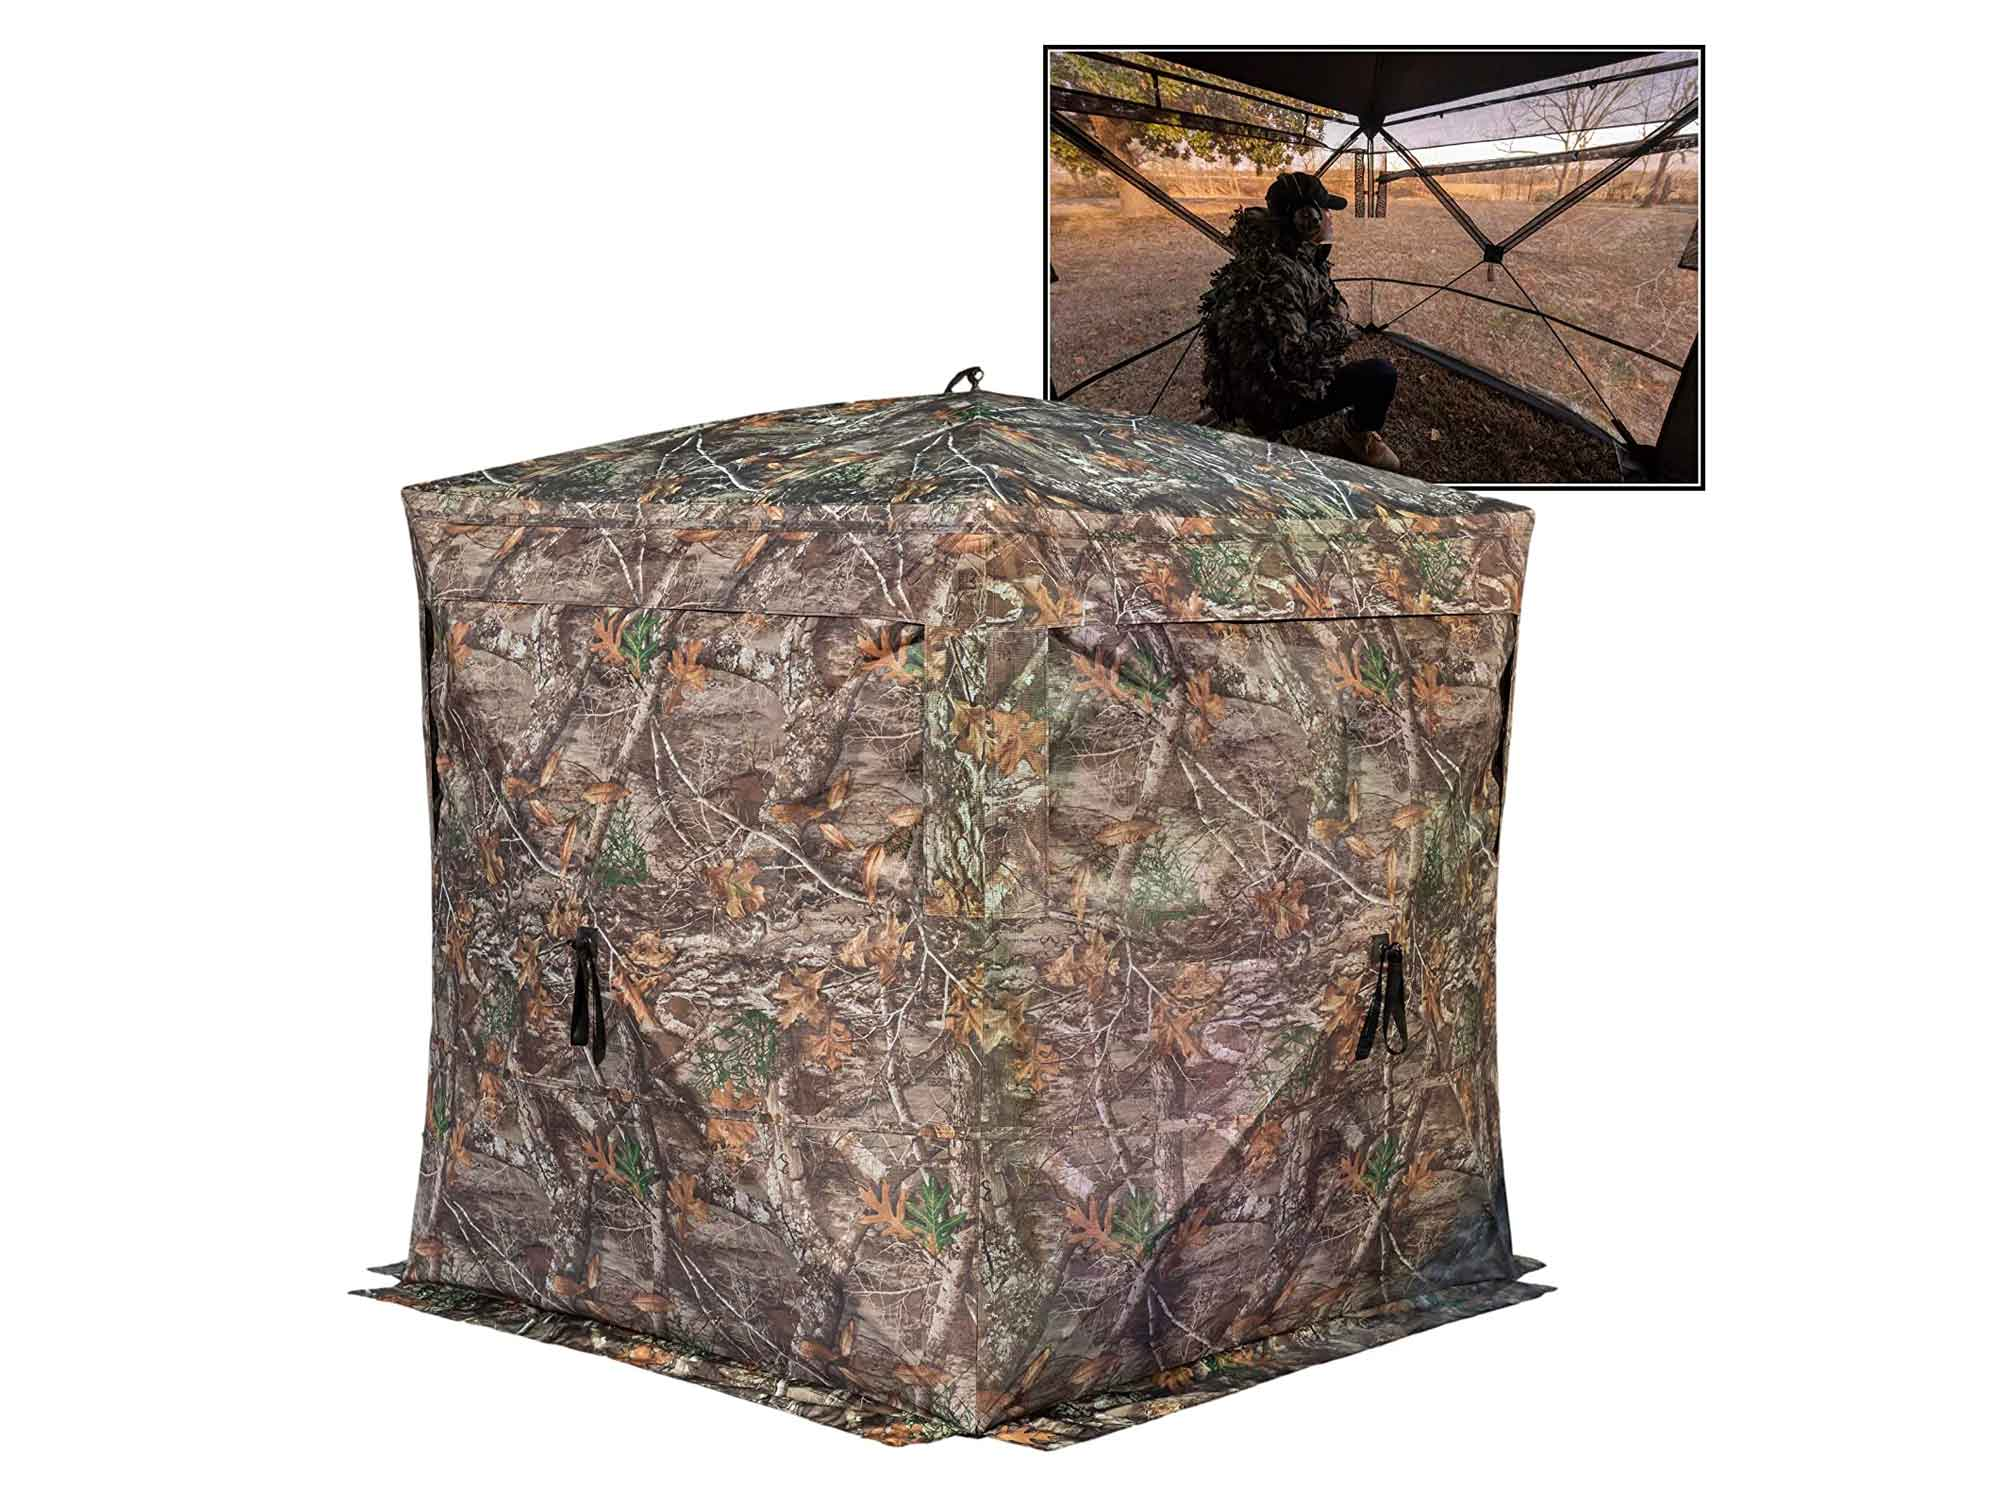 Rhino Blinds 3 Person See Through Hunting Ground Blind, Realtree Edge